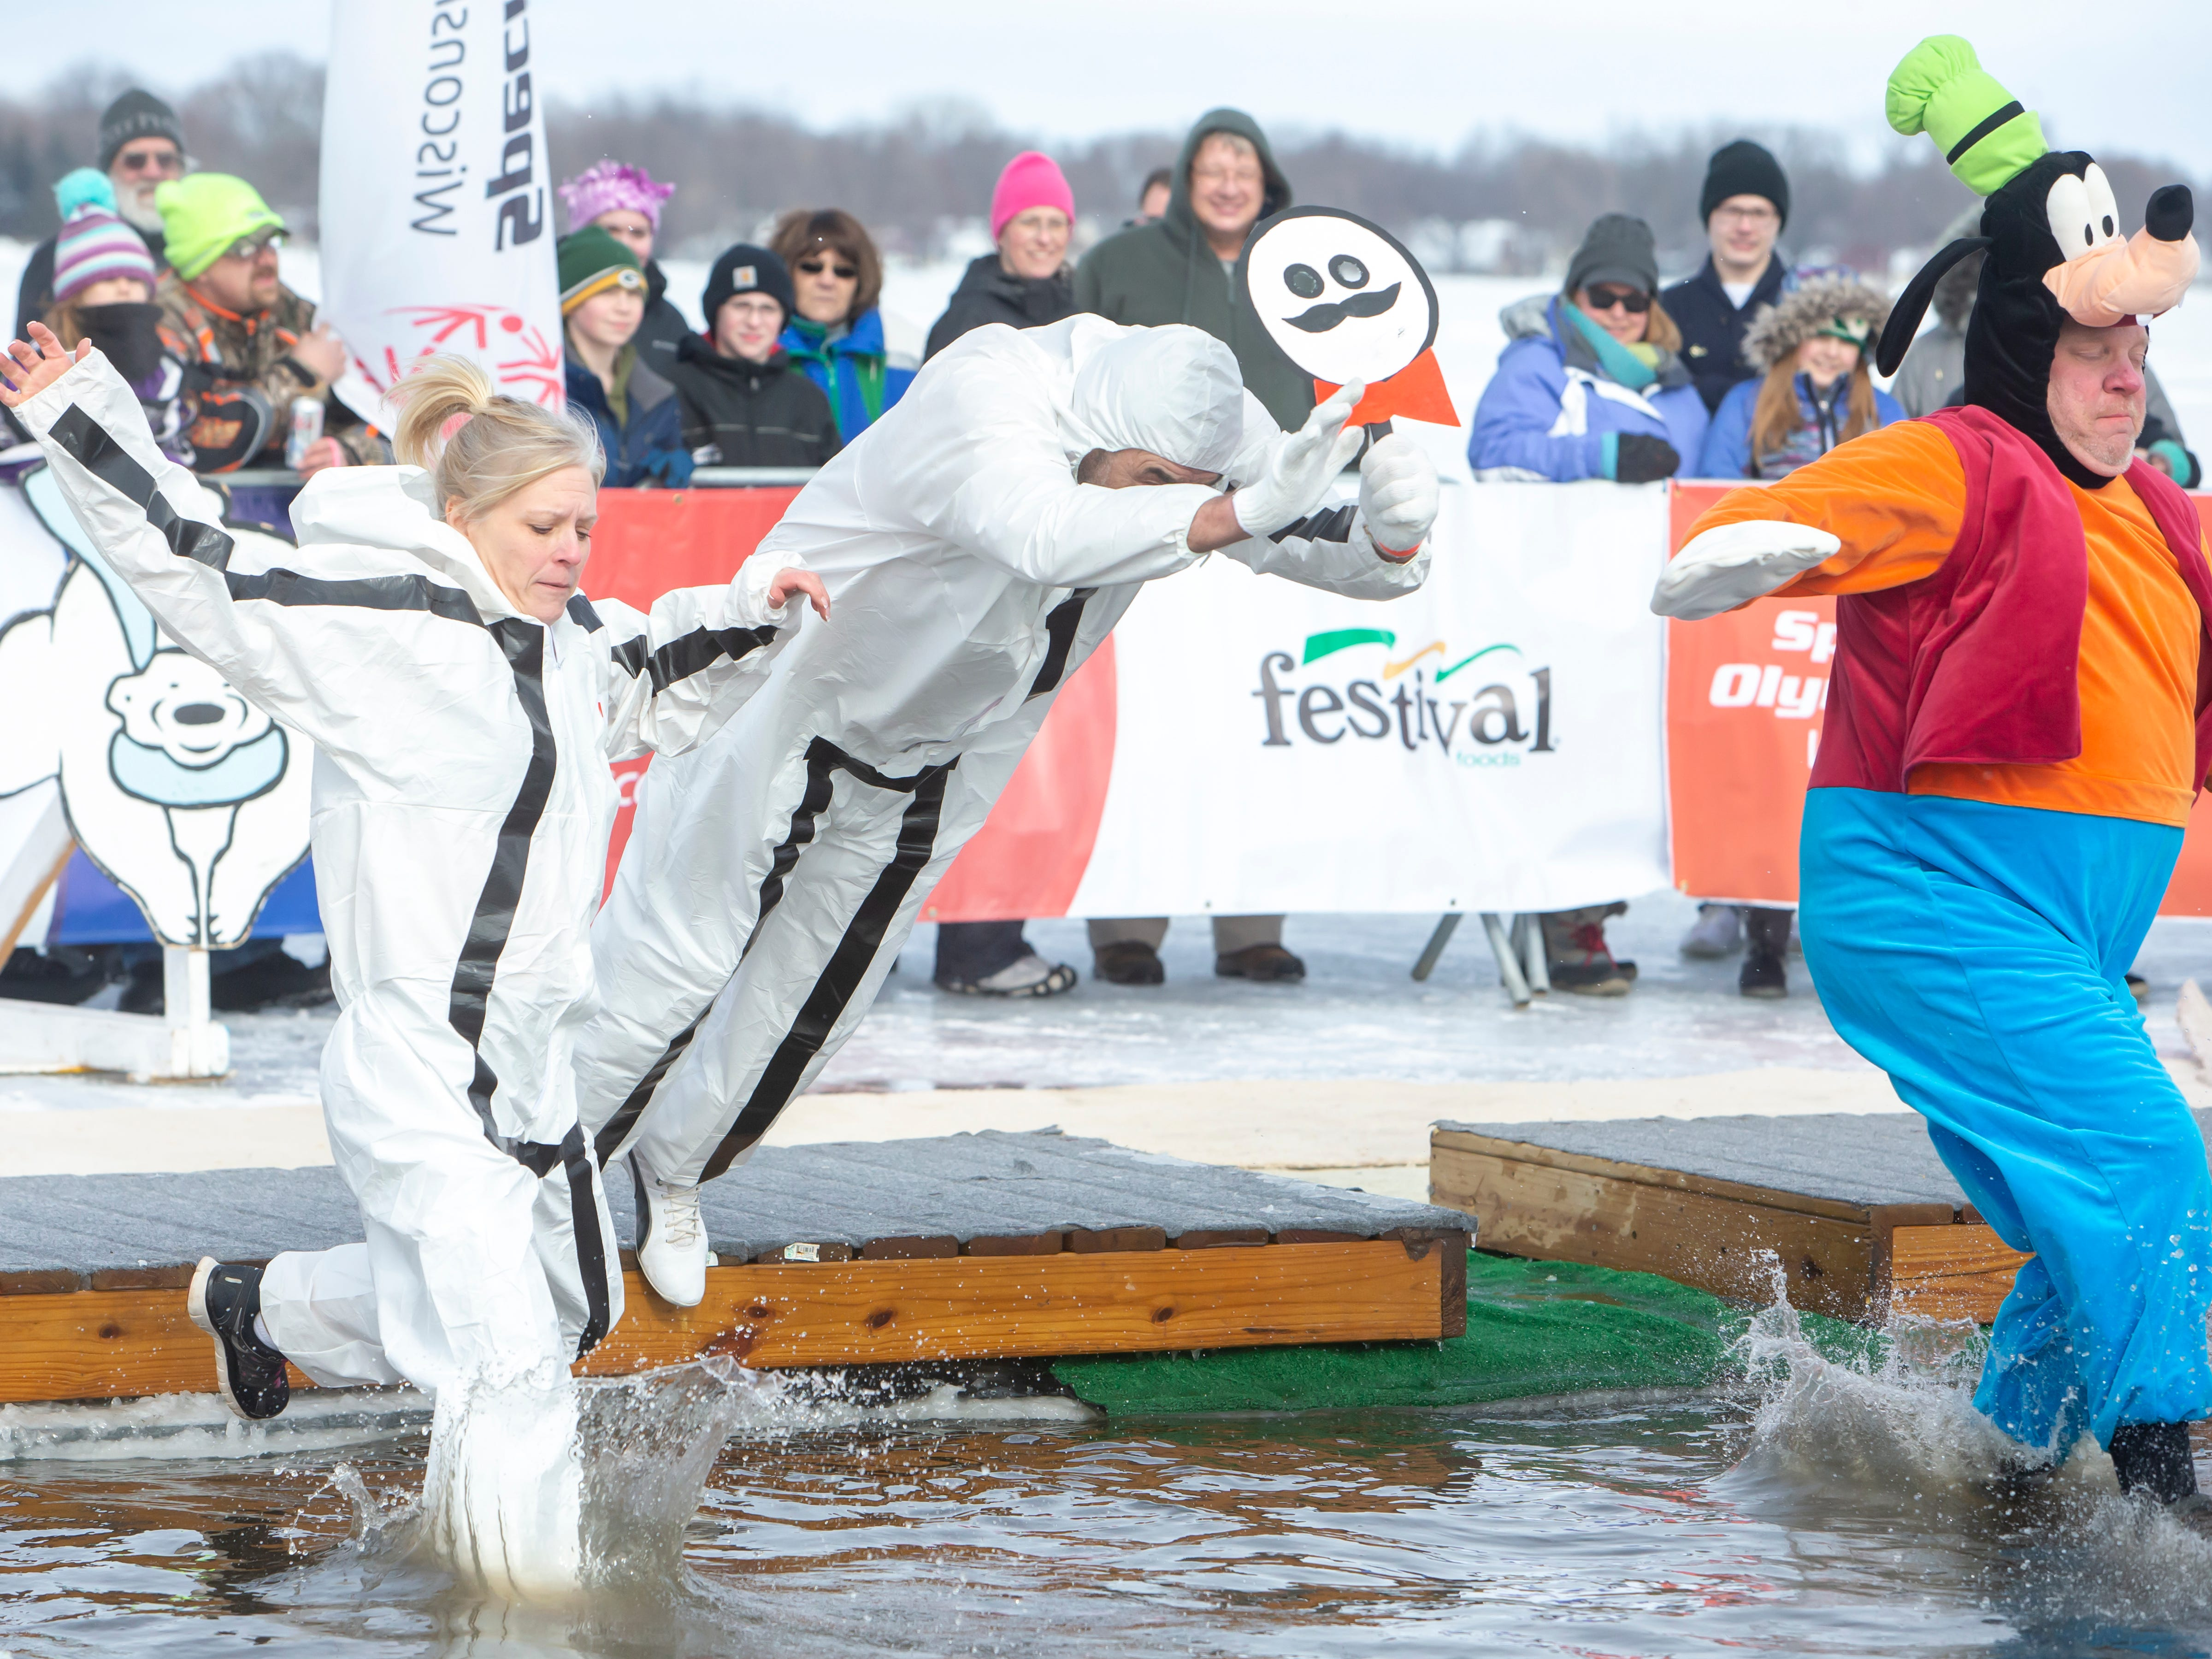 Groups dressed in costume take the plunge during the Special Olympics Wisconsin Polar Plunge in Oshkosh, Wis., on Saturday, February 16, 2019, at Miller's Bay in Menominee Park.